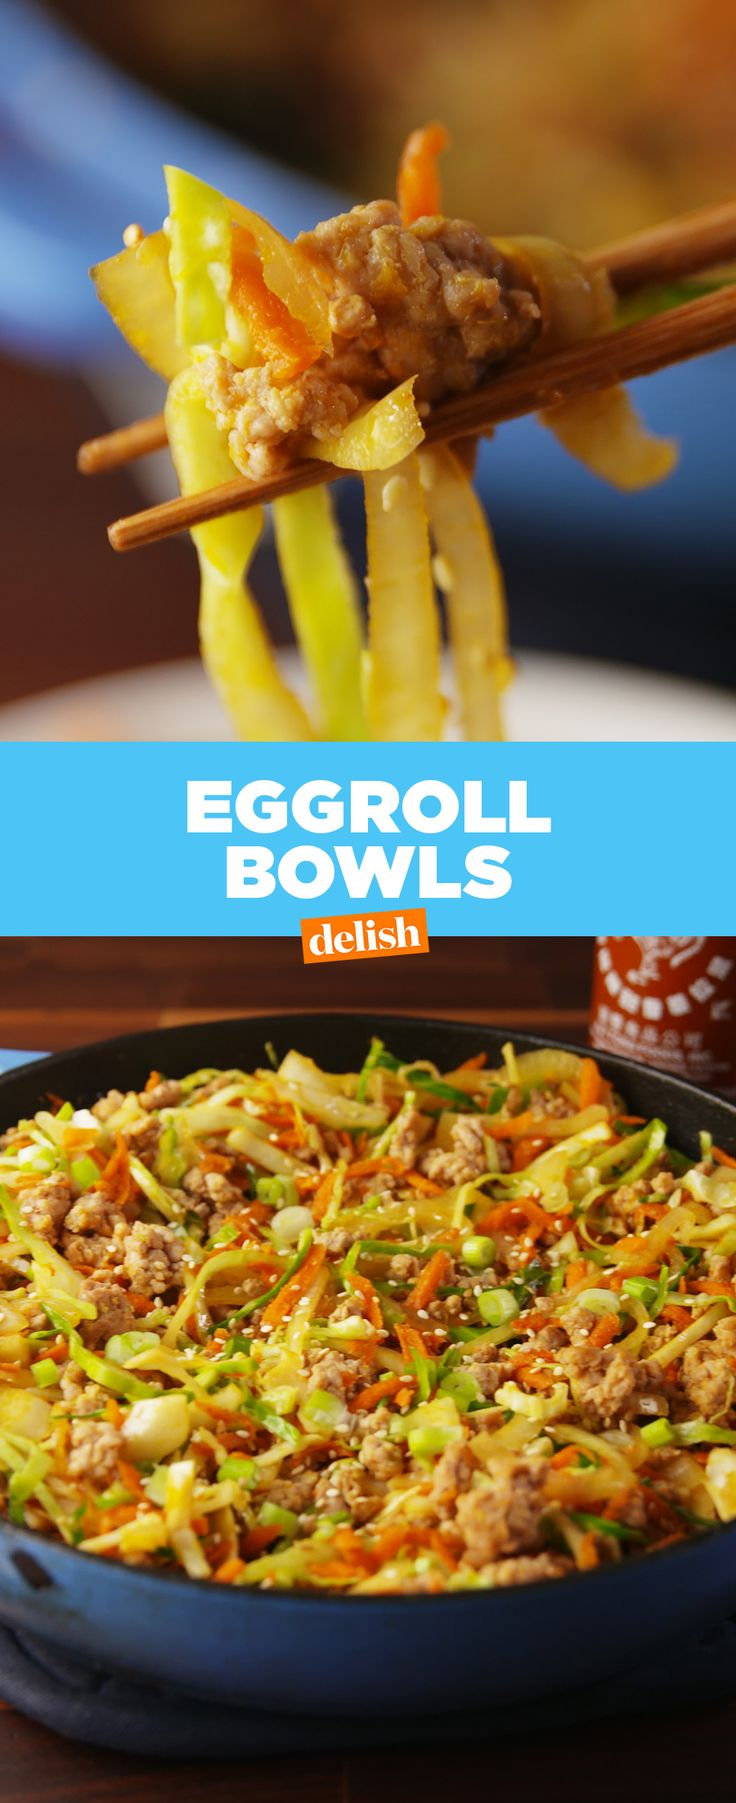 This tastes just like an egg roll, without all of the carbs. Get the recipe at Delish.com